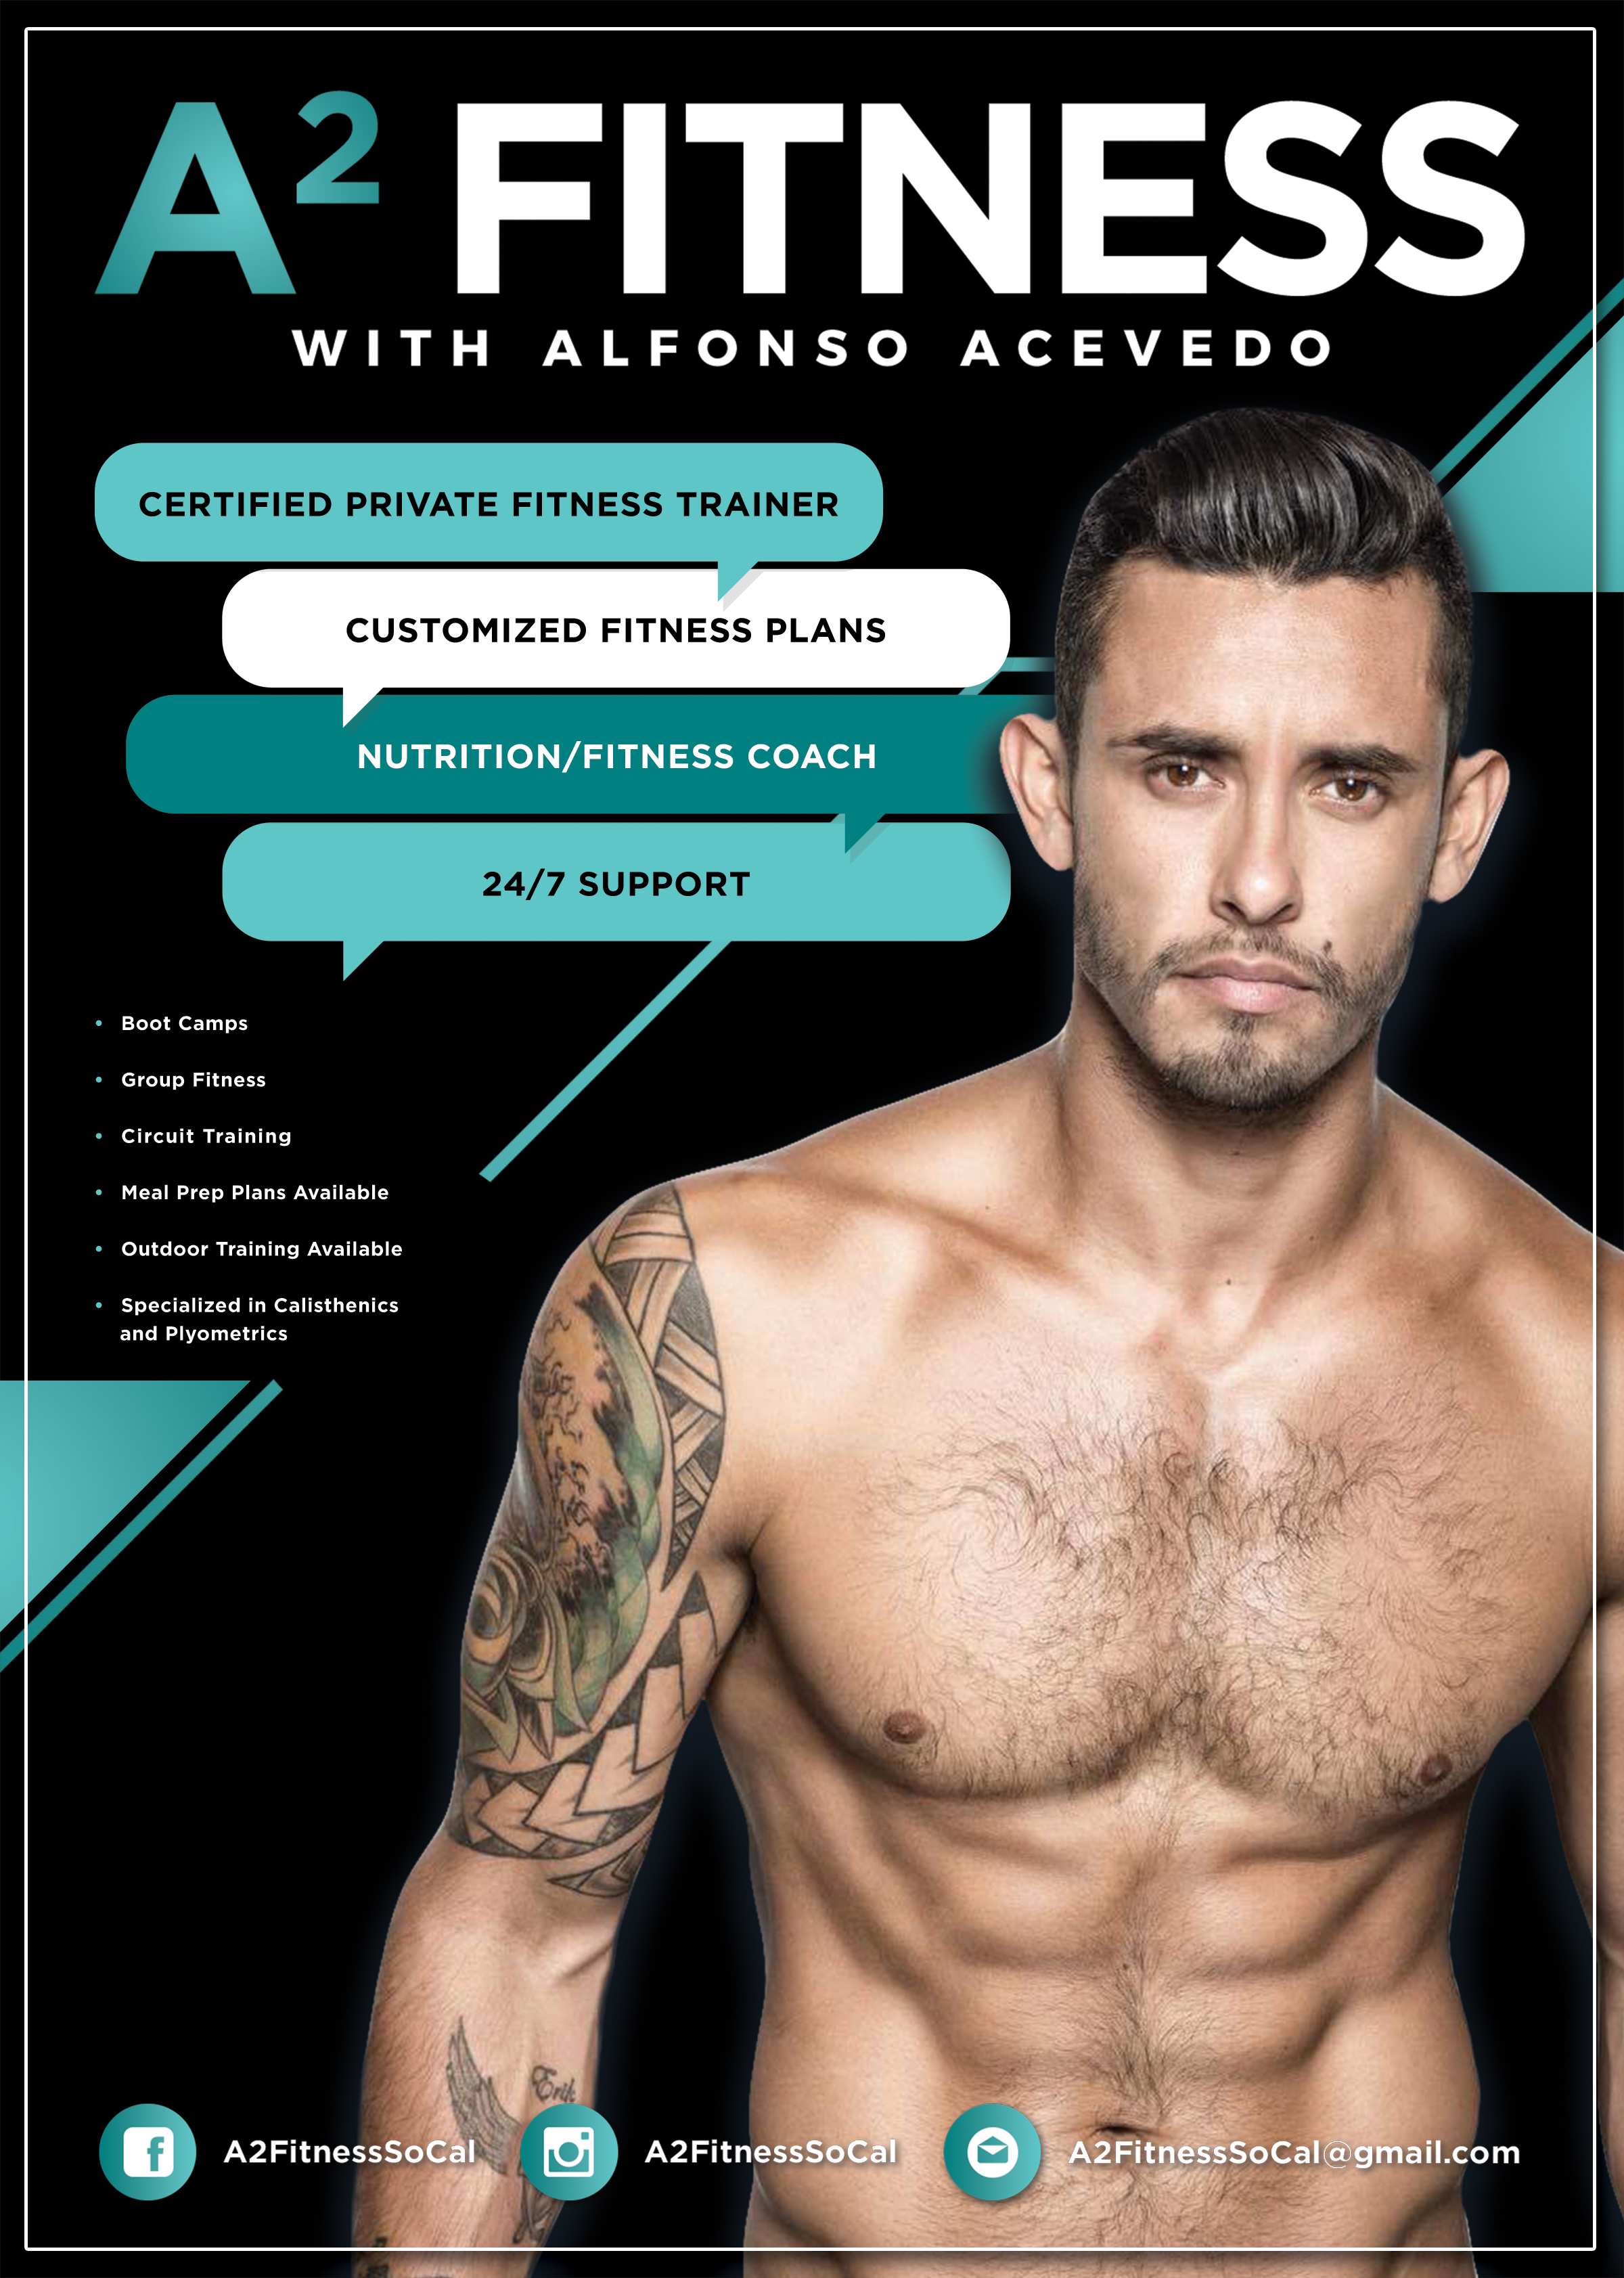 Design for my good friend, Alfonso who's launching his fitness training empire. Check him out: @A2FitnessSoCal